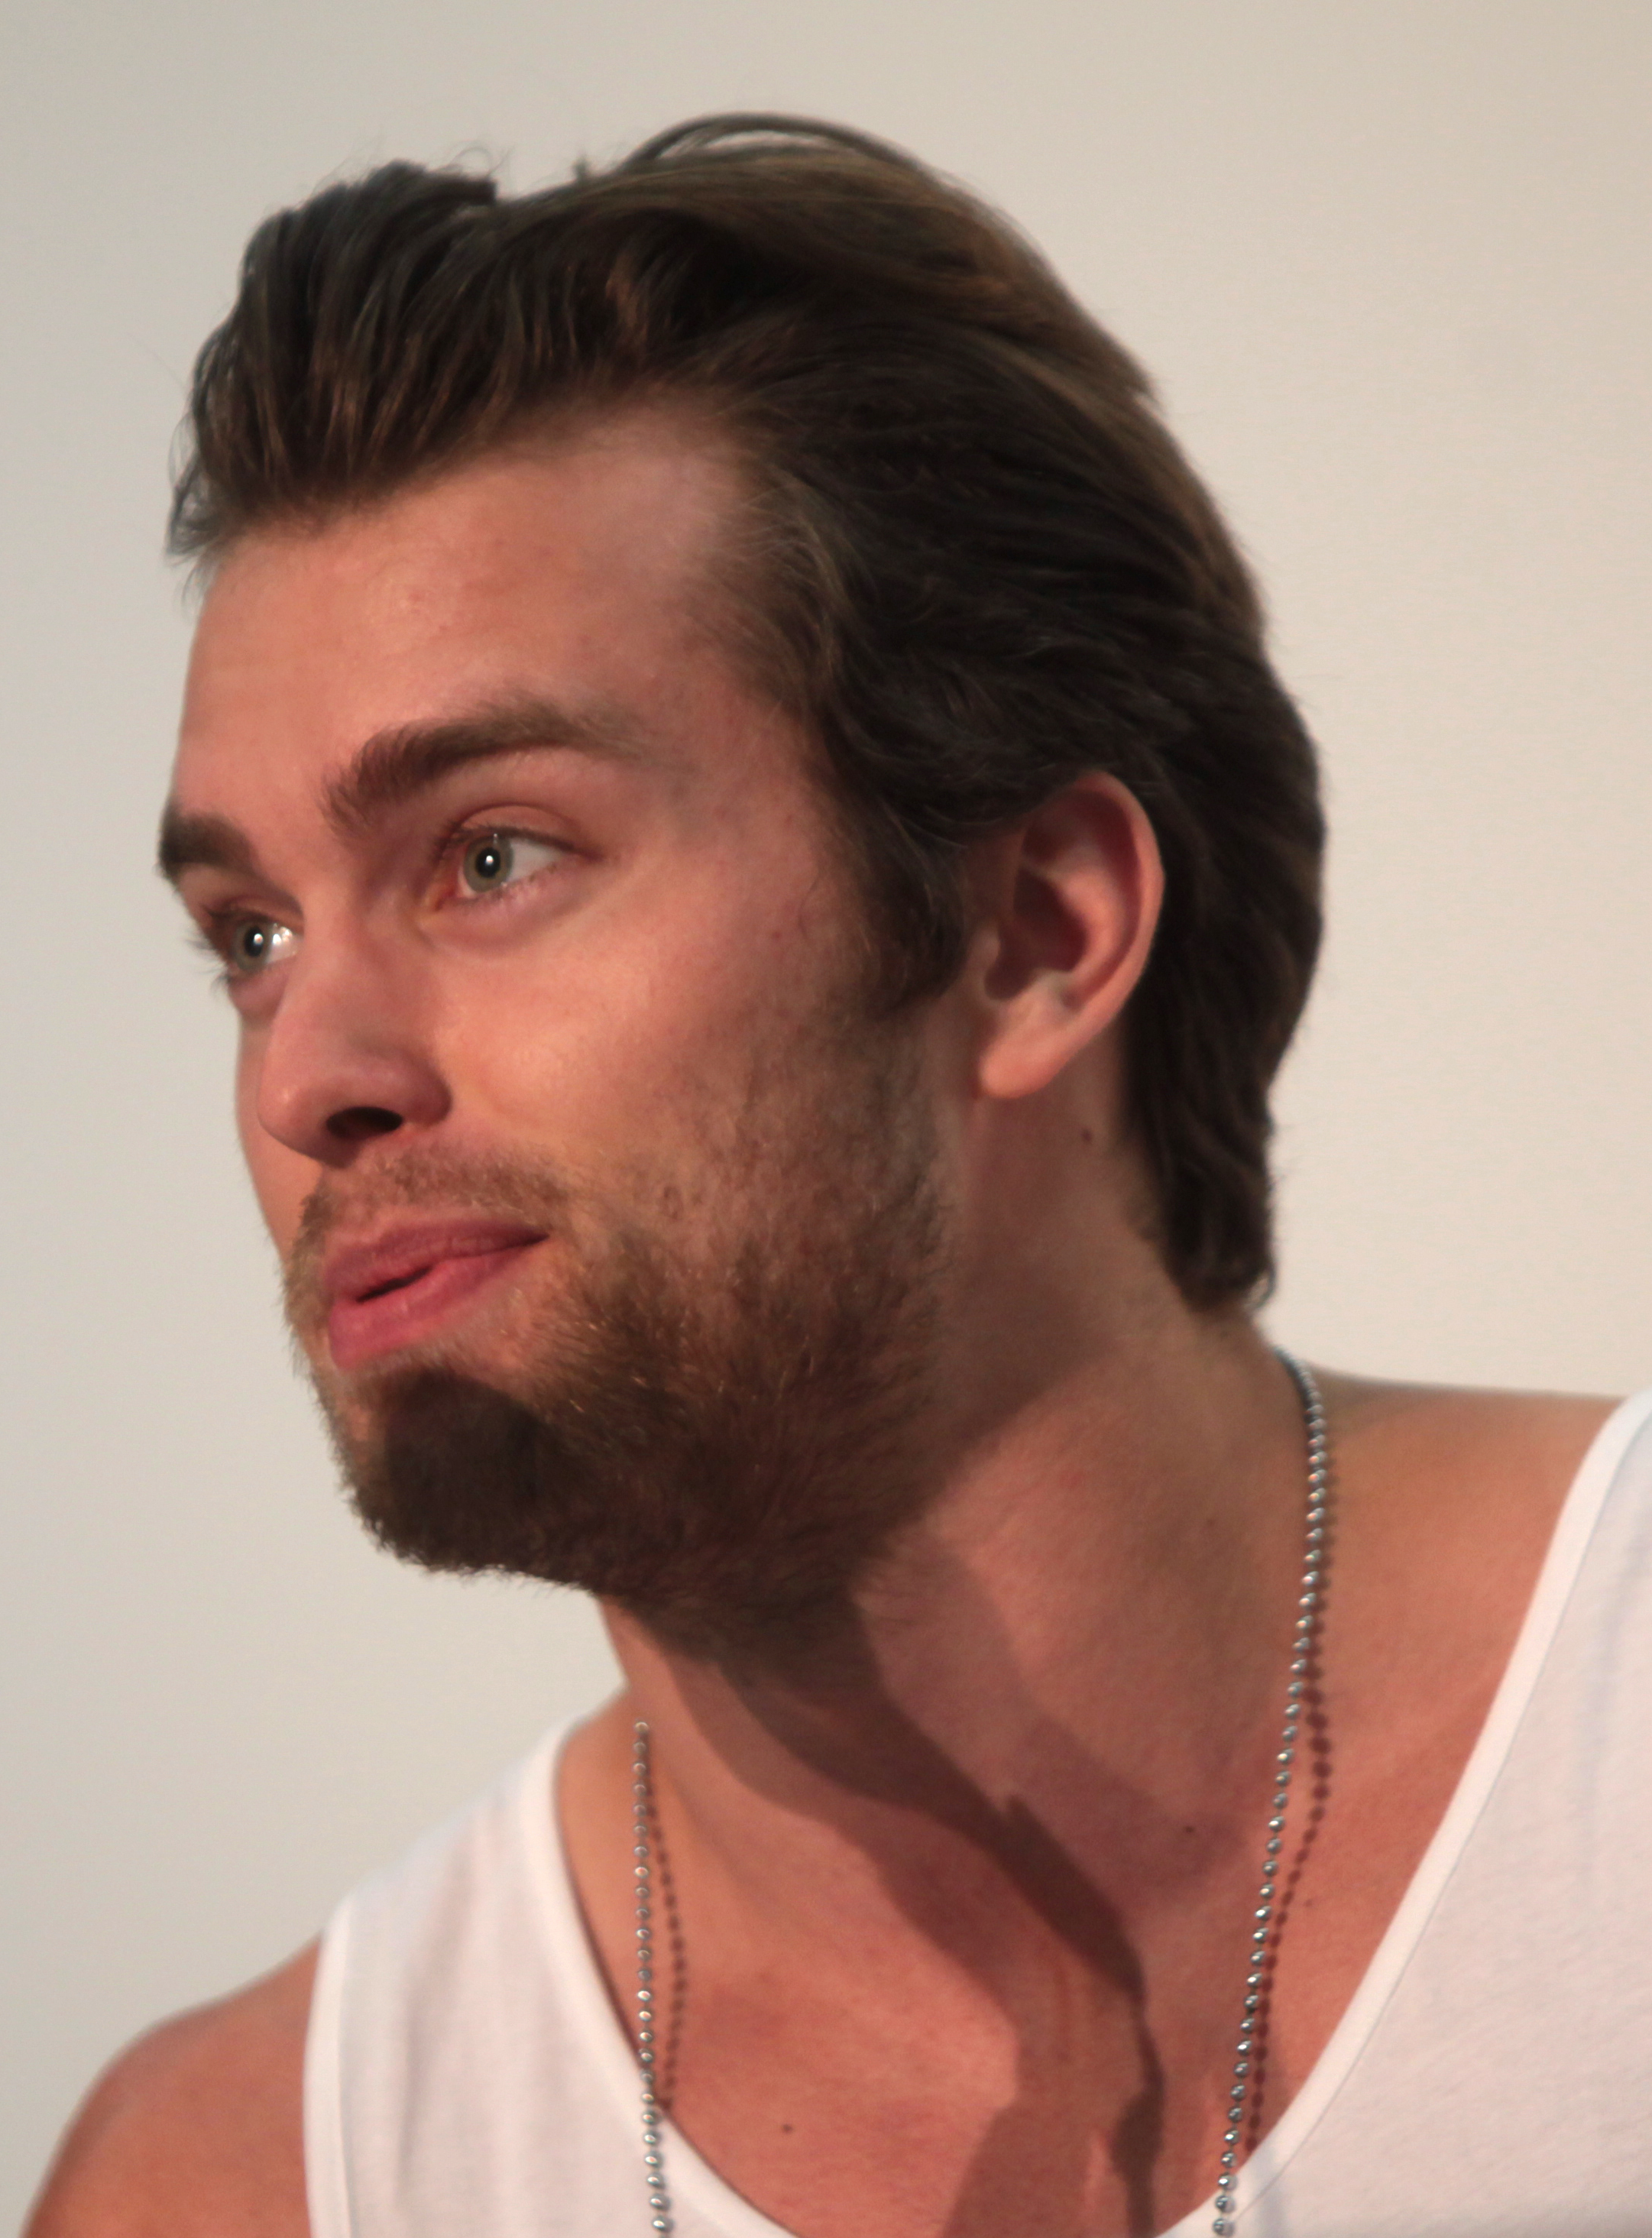 pierson fode agepierson fode vk, pierson fode instagram, pierson fode movies, pierson fode gif, pierson fode age, pierson fode films, pierson fode, pierson fode height, pierson fode wiki, pierson fode icarly, pierson fode actor, pierson fode and debby ryan, pierson fode 2015, pierson fode wikipedia, pierson fode girlfriend, pierson fode and victoria justice 2015, pierson fode and victoria justice, pierson fode jessie, pierson fode dating, pierson fode shirtless